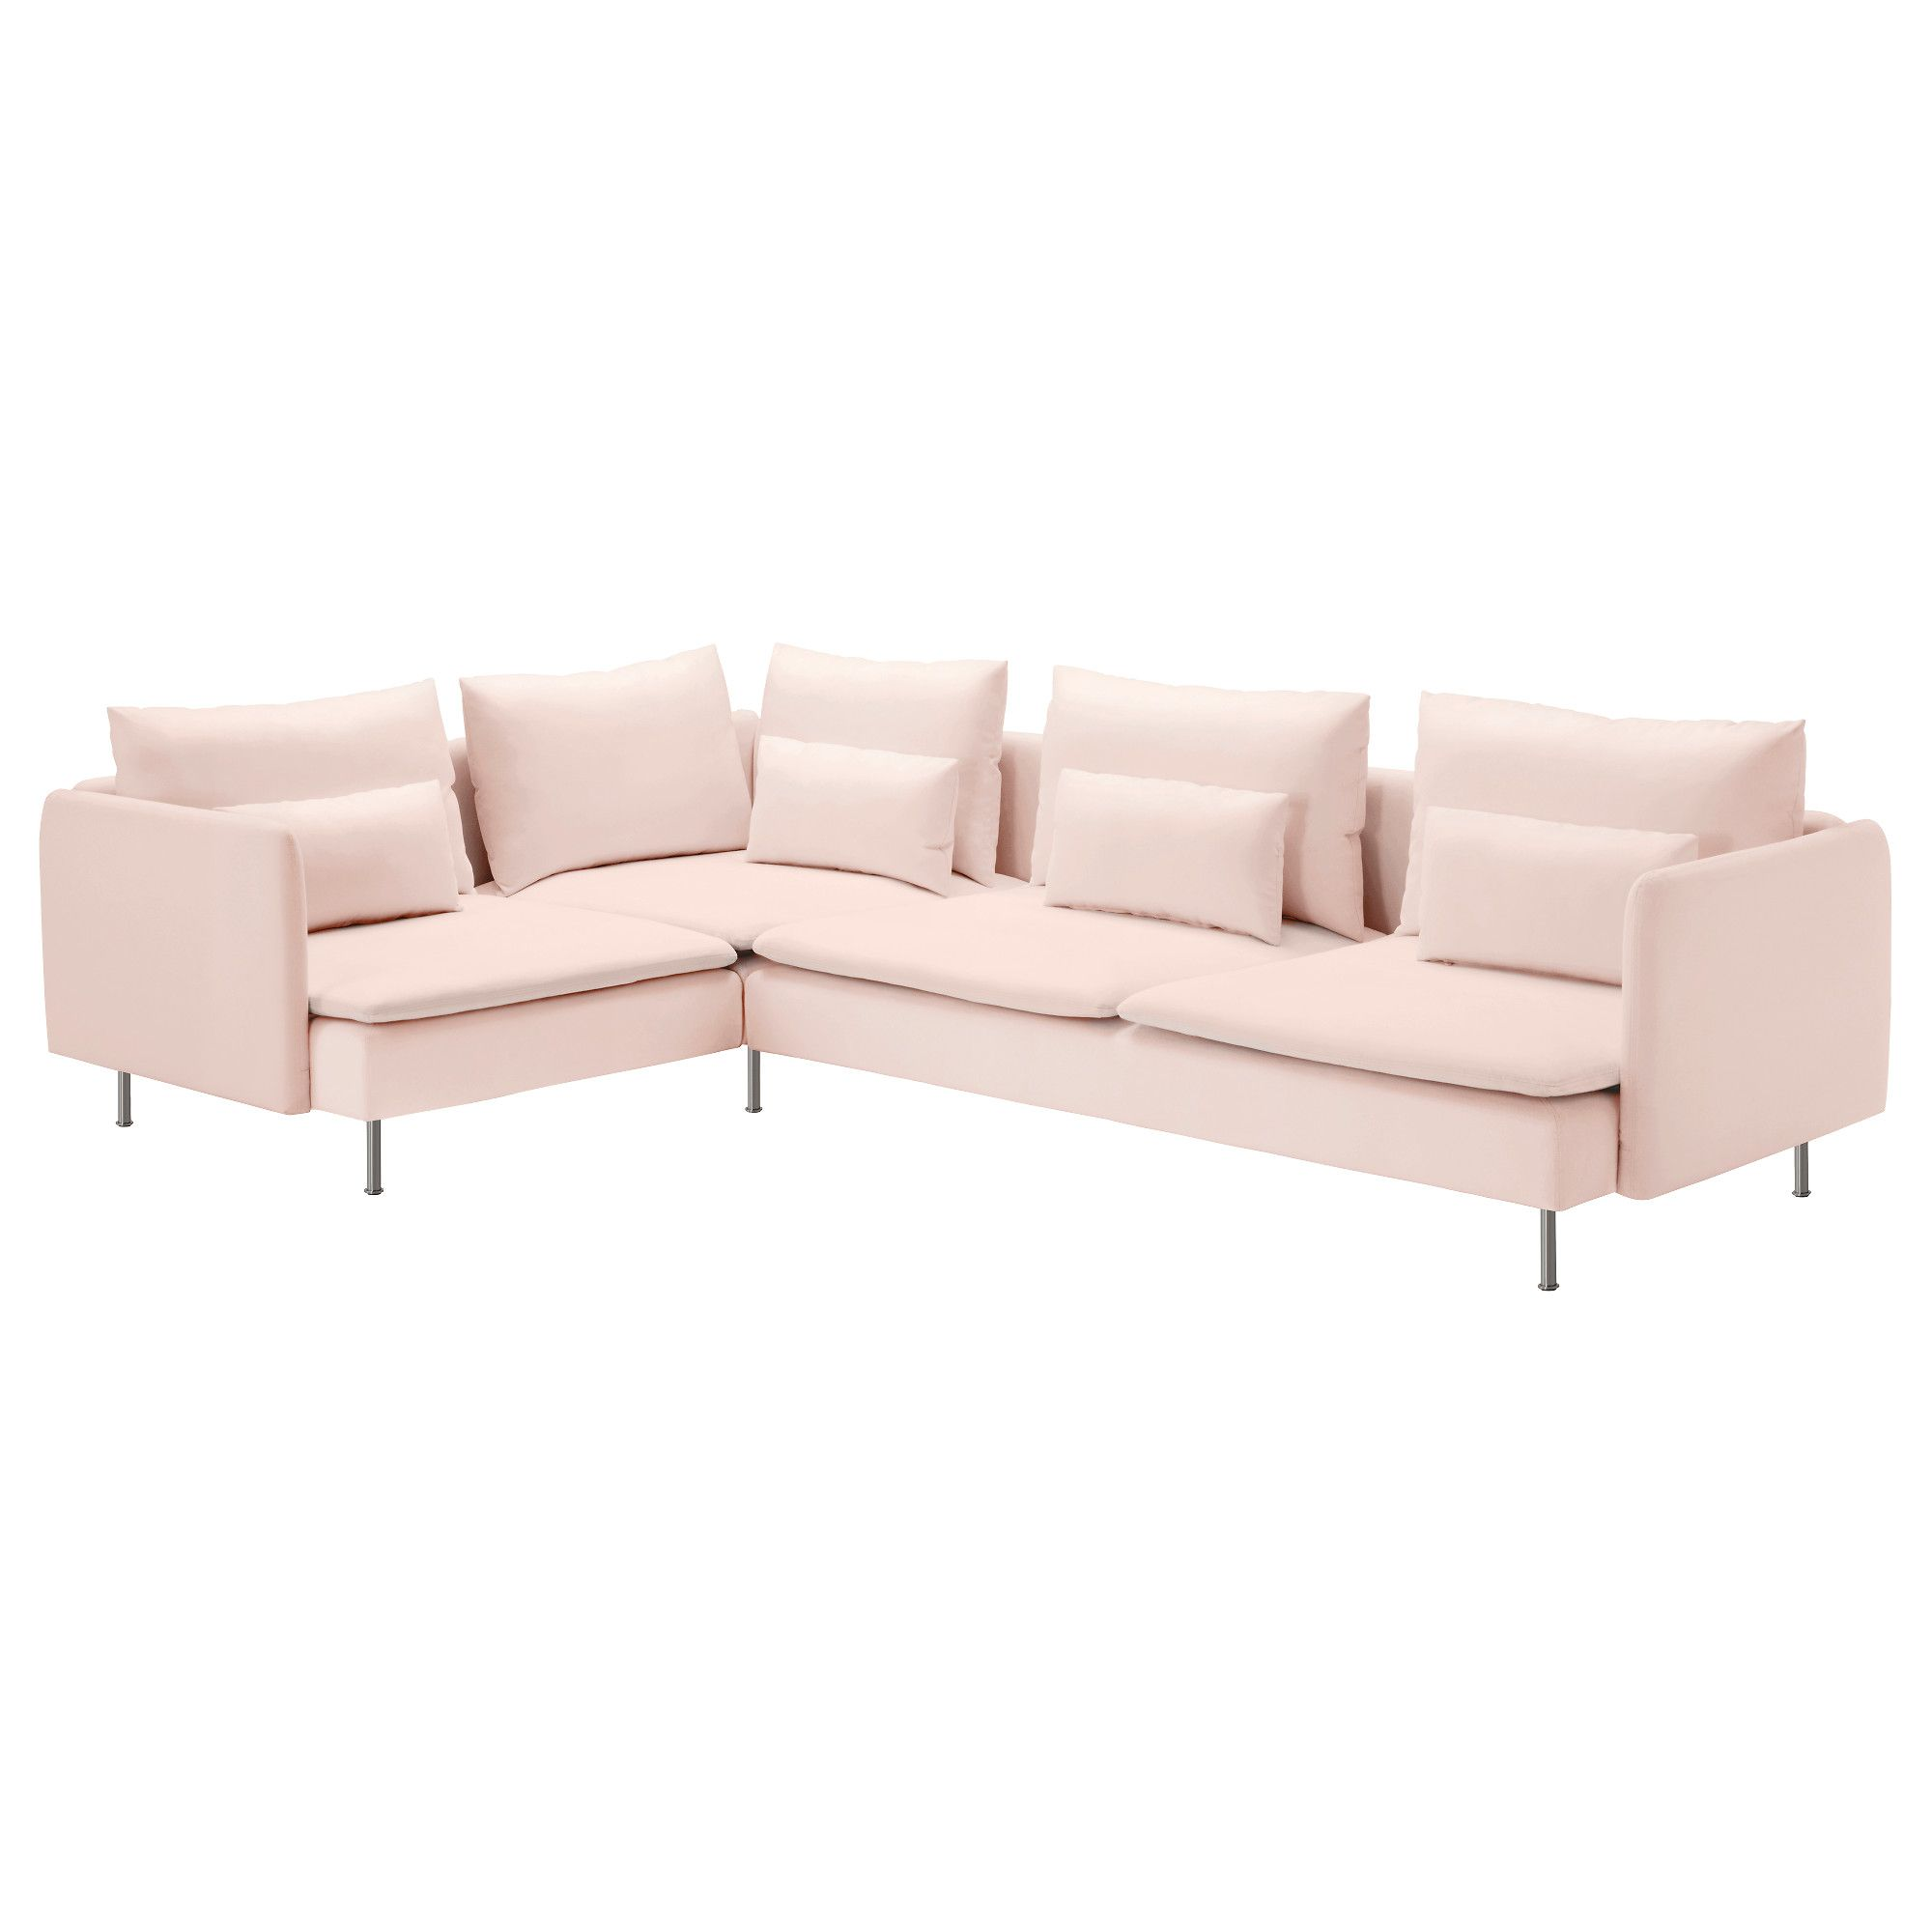 A medium sized living room furnished with a large corner sofa in a